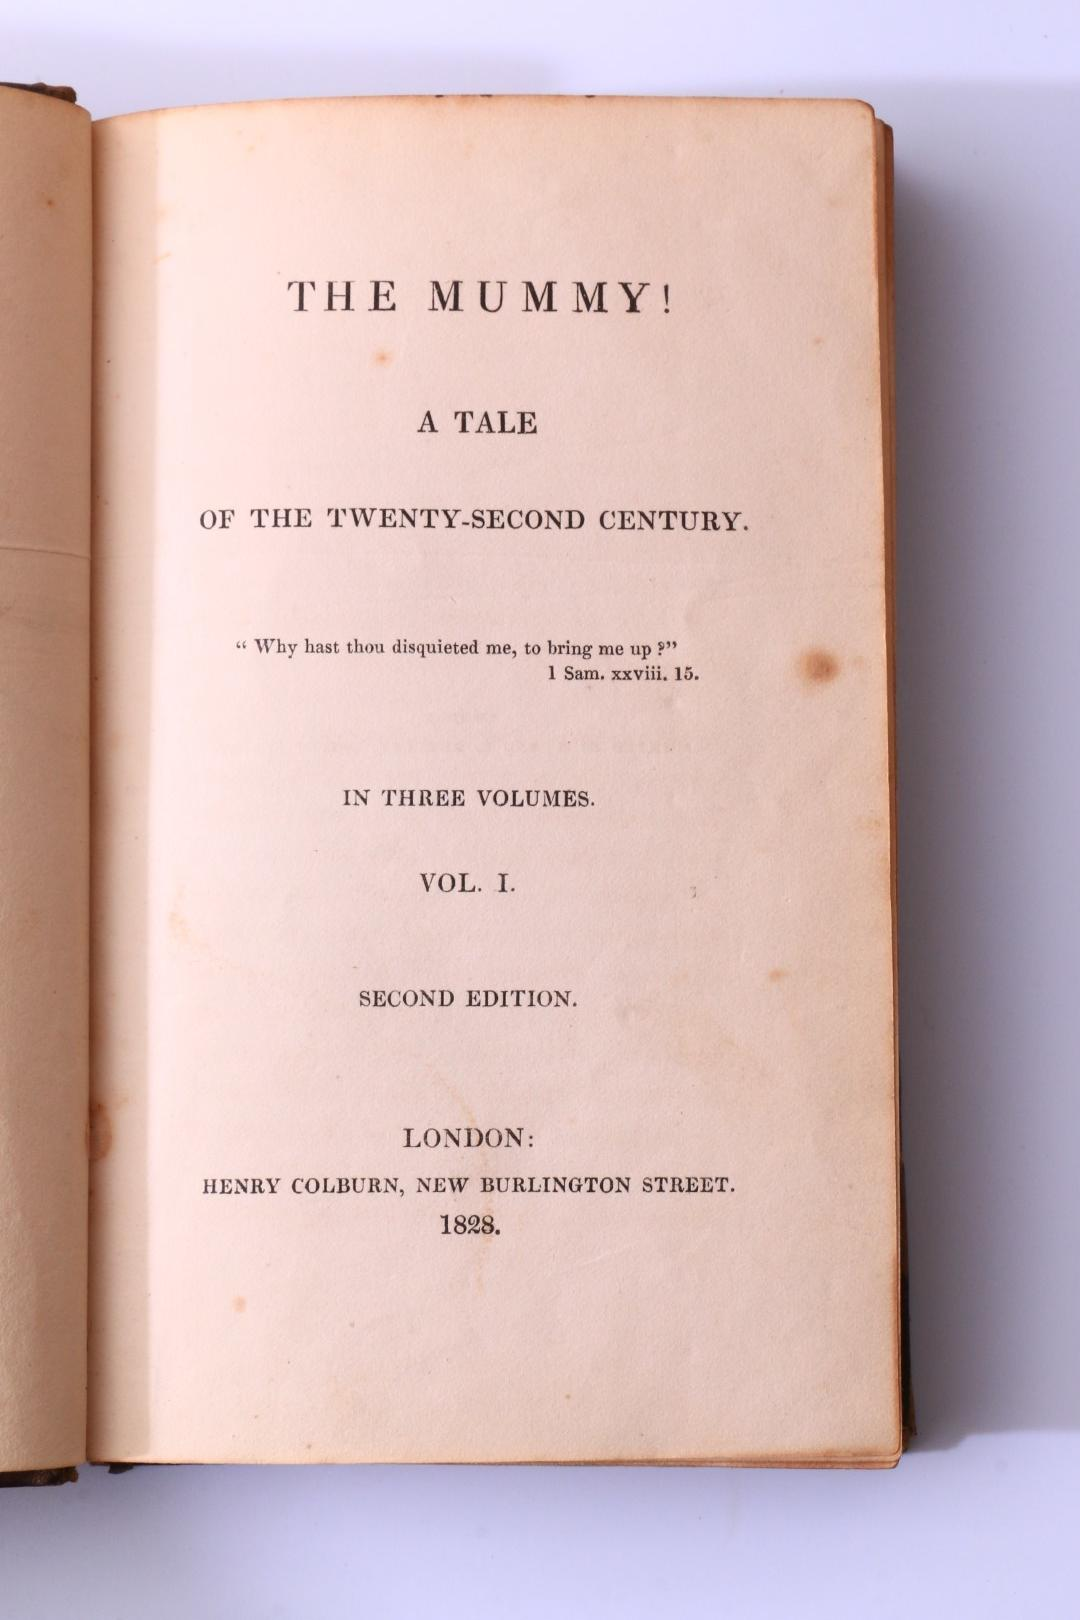 Anonymous [Jane Wells Webb Loudon] - The Mummy! A Tale of the Twenty-Second Century - Henry Colburn, 1828, Second Edition.